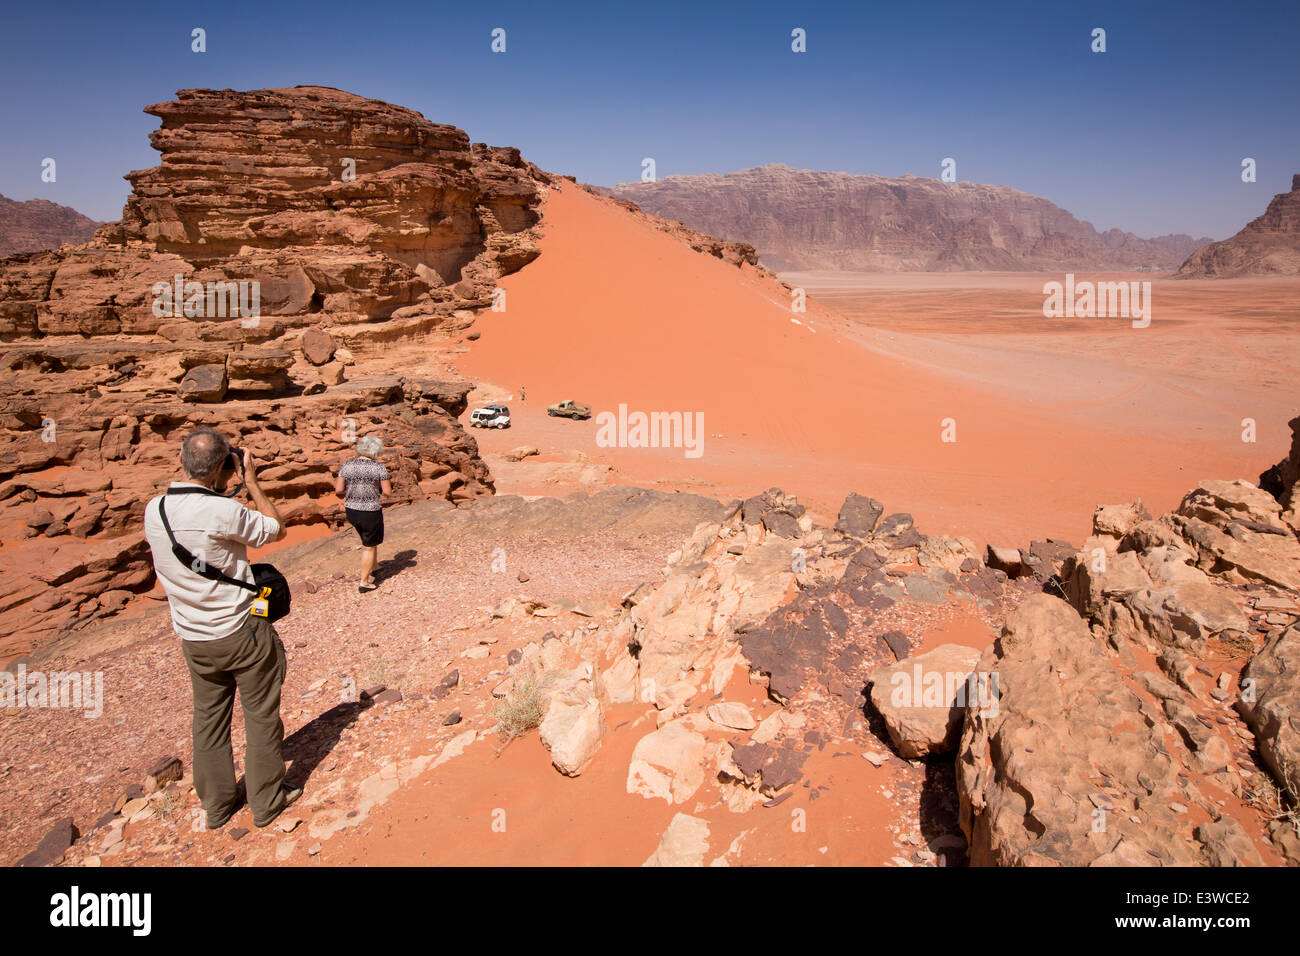 Jordan, Wadi Rum, western tourists viewing red sand dunes from rocky outcrop - Stock Image